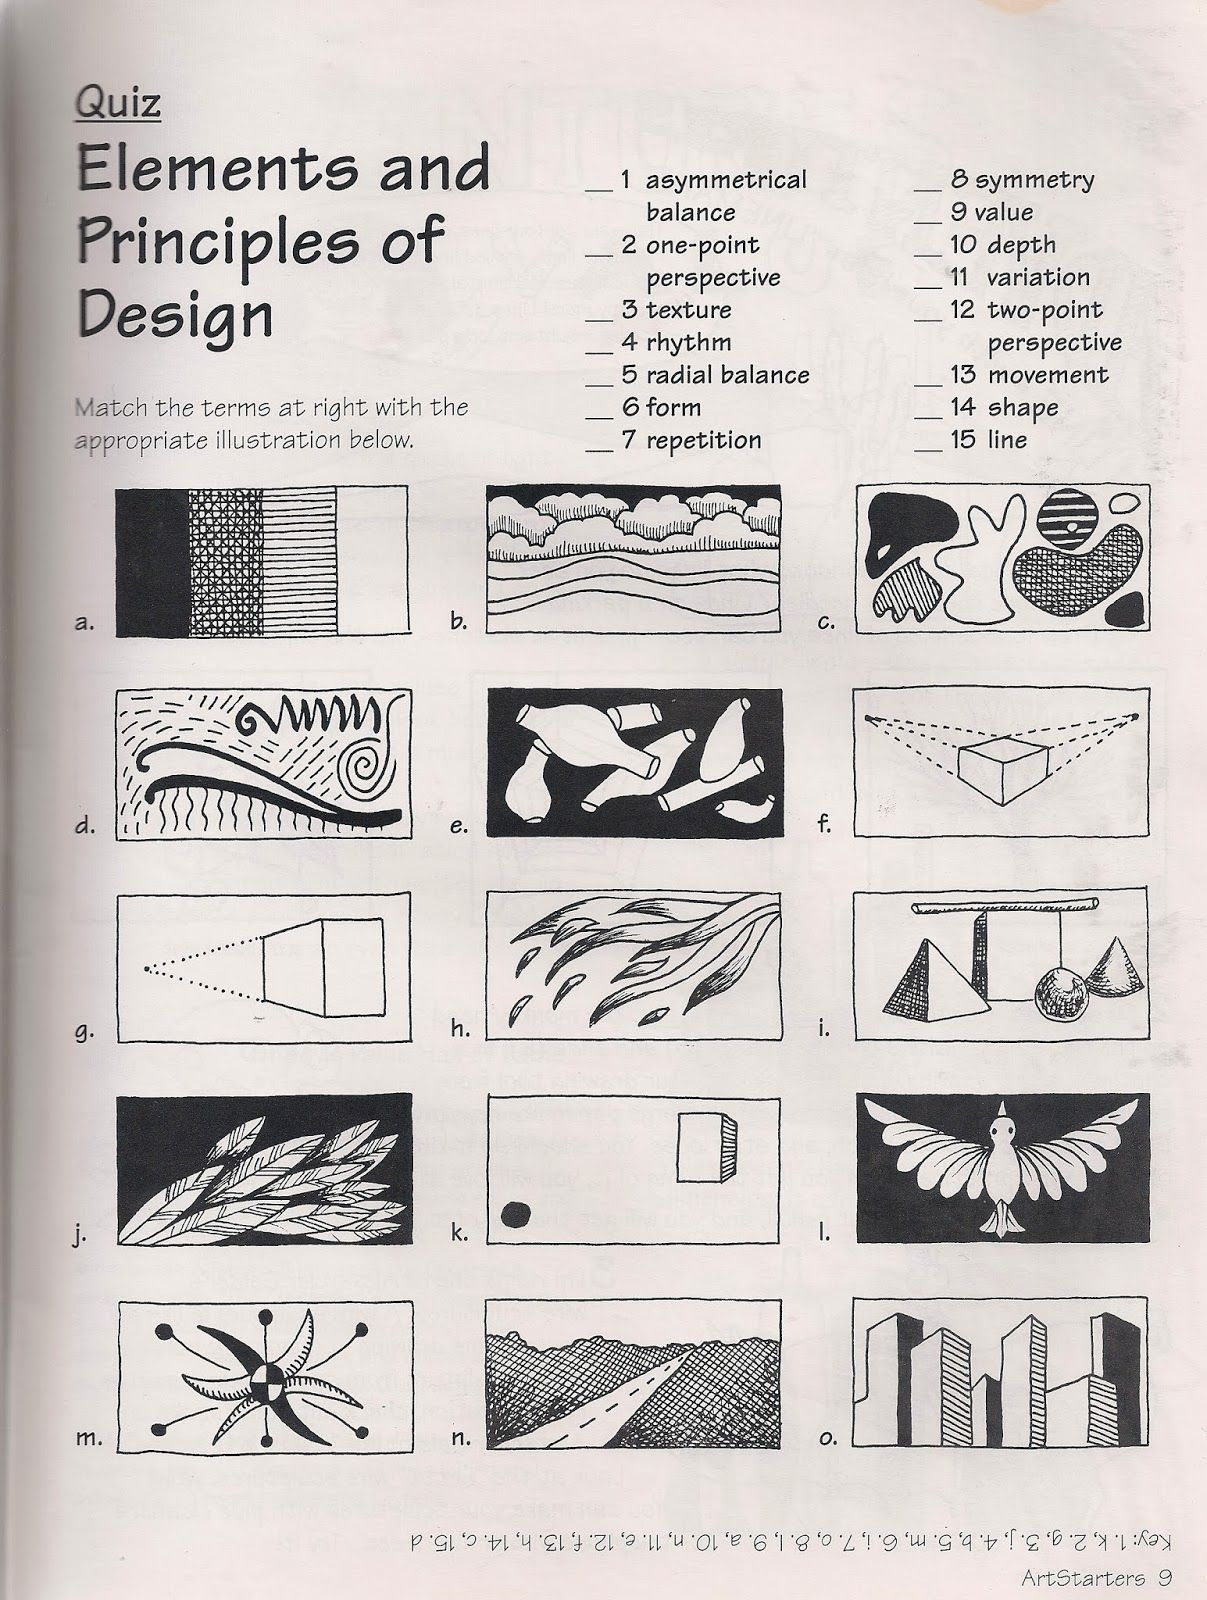 Artistic Elements And Principles : No corner suns the elements and principles of art